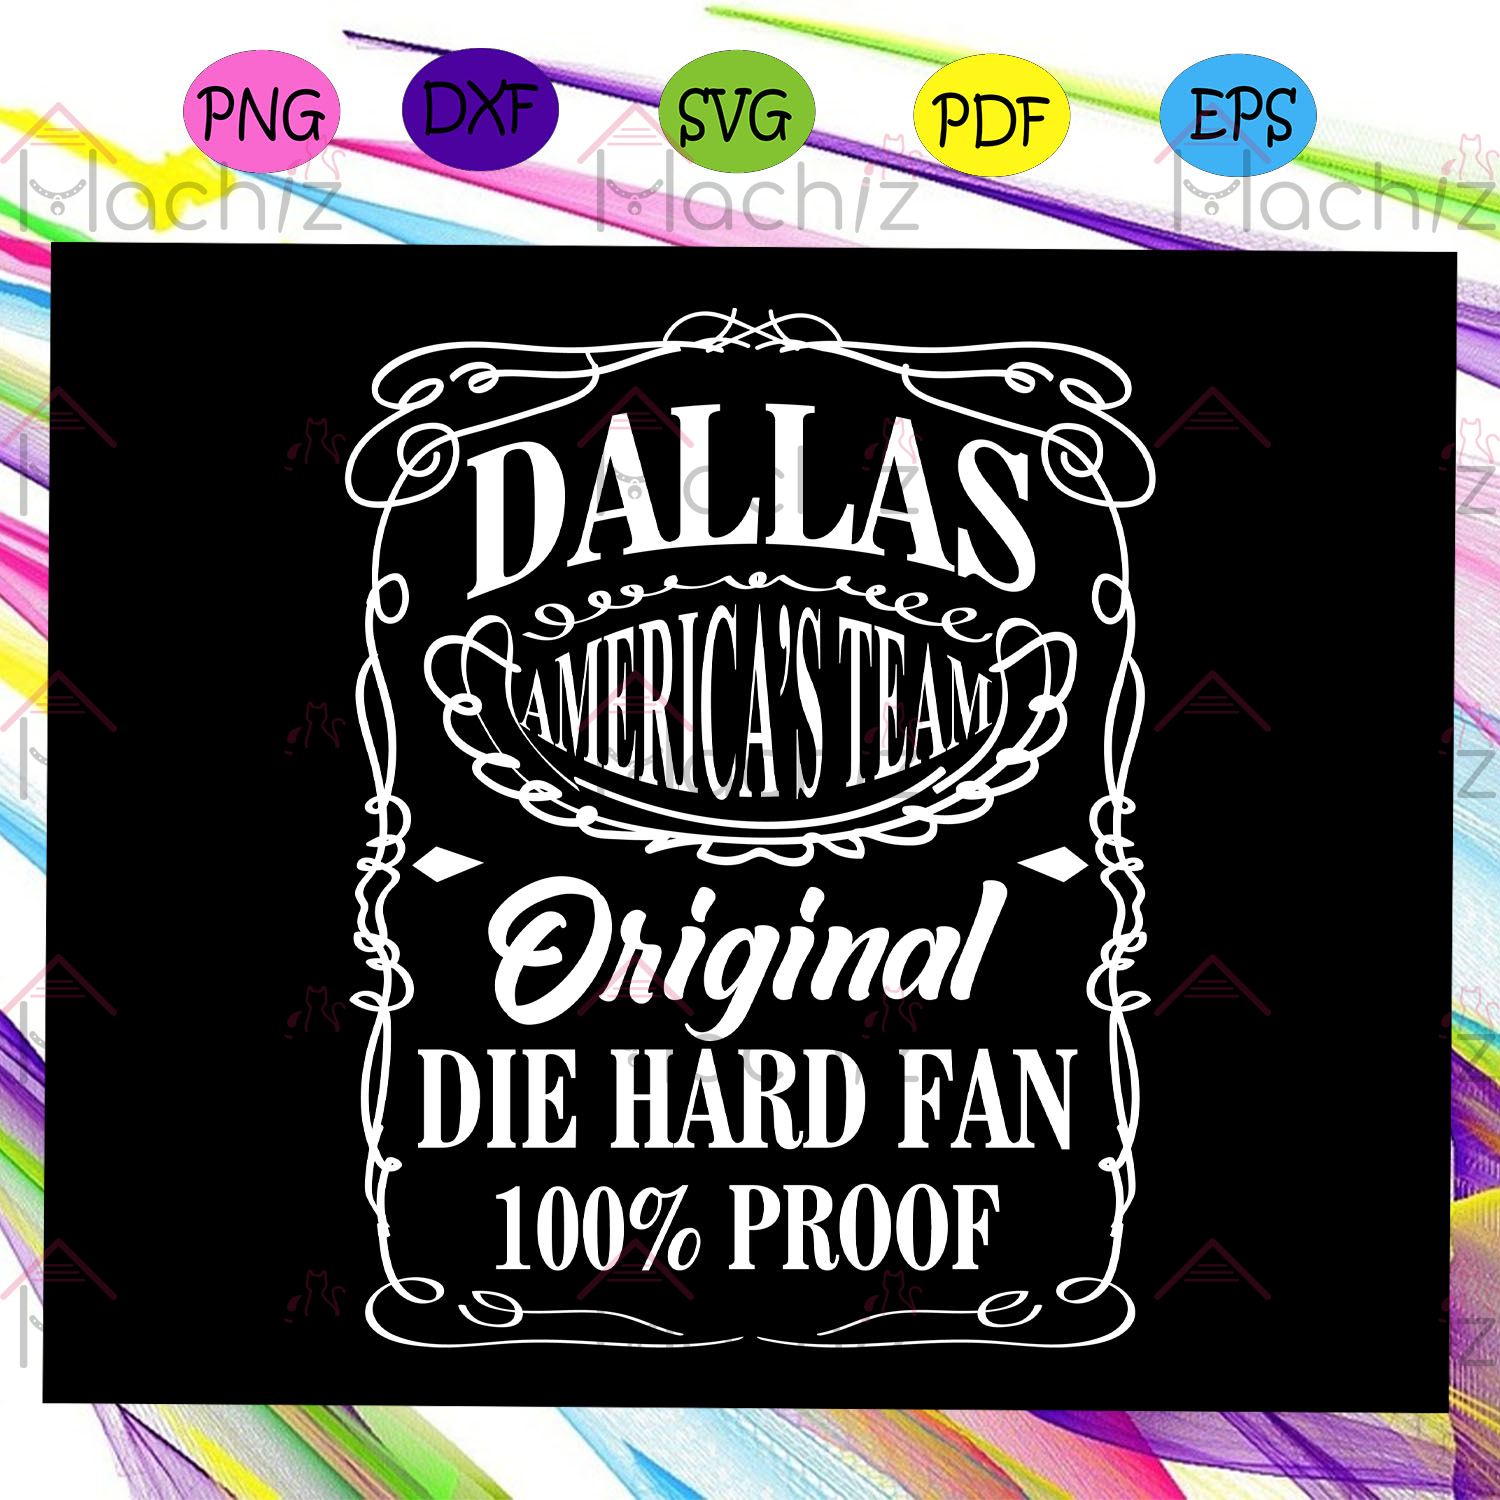 Dallas america's team original die hard fan 100% proof, dallas, team, dallas team, america's team, dallas team fan, dallas team gift, dallas lover svg,For Silhouette, Files For Cricut, SVG, DXF, EPS, PNG Instant Download